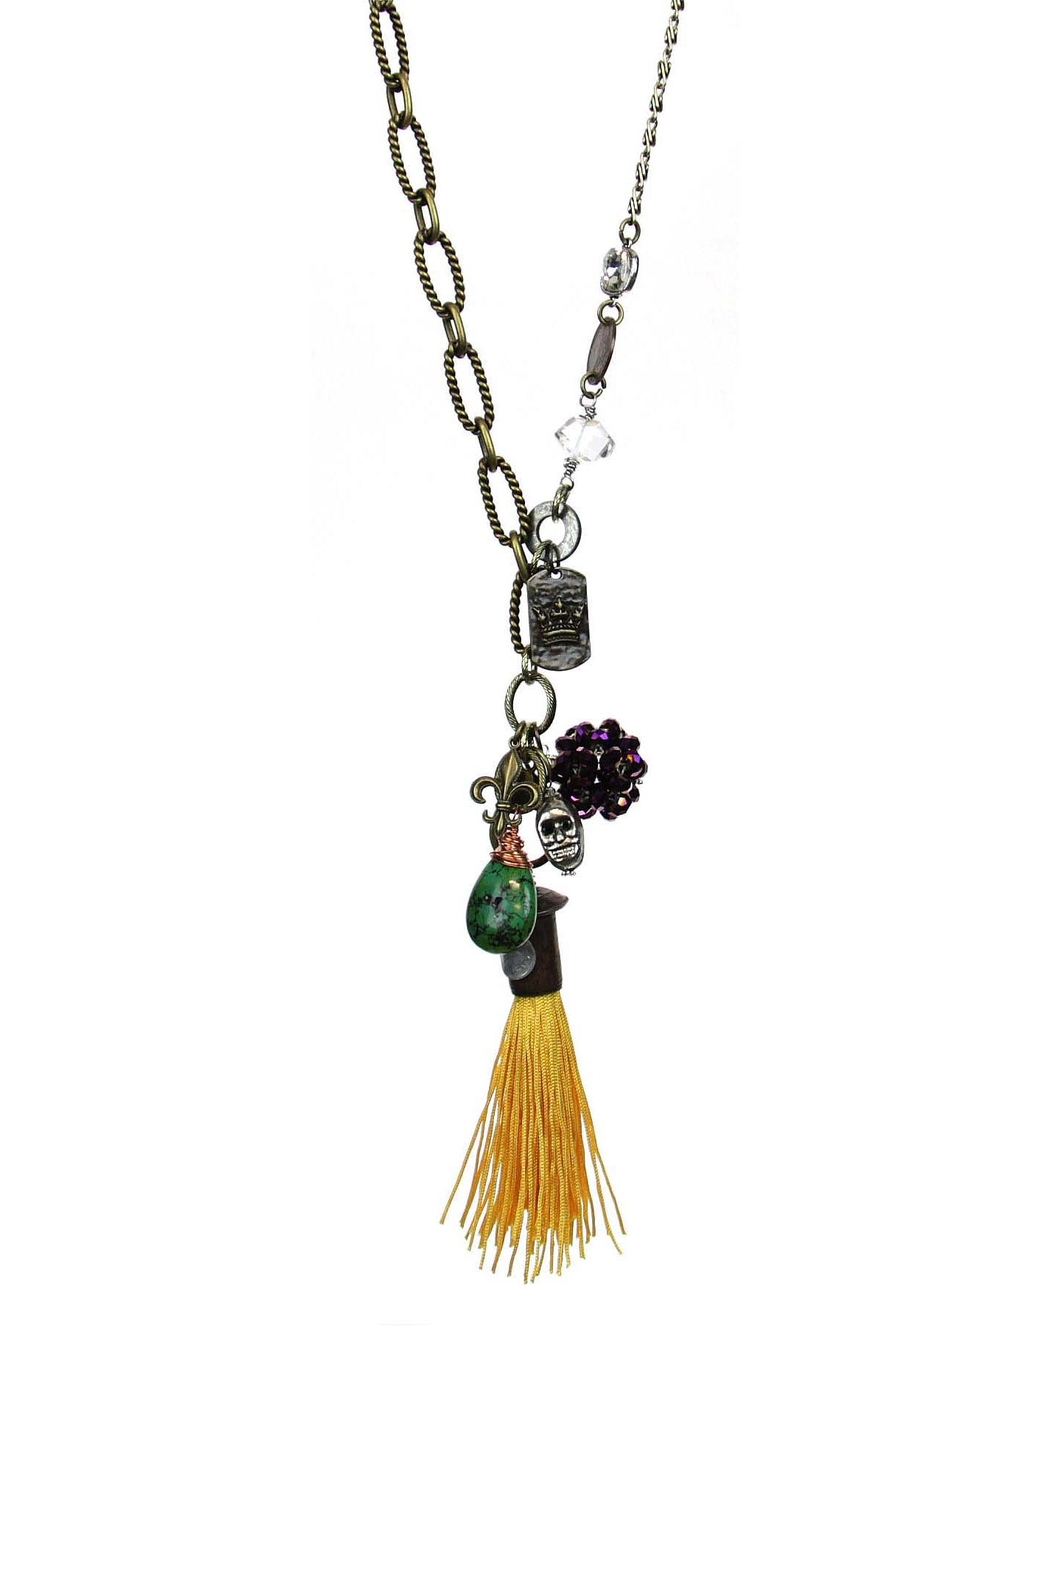 Art By Amy Mardi-Gras Necklace-Gold Tassel - Main Image